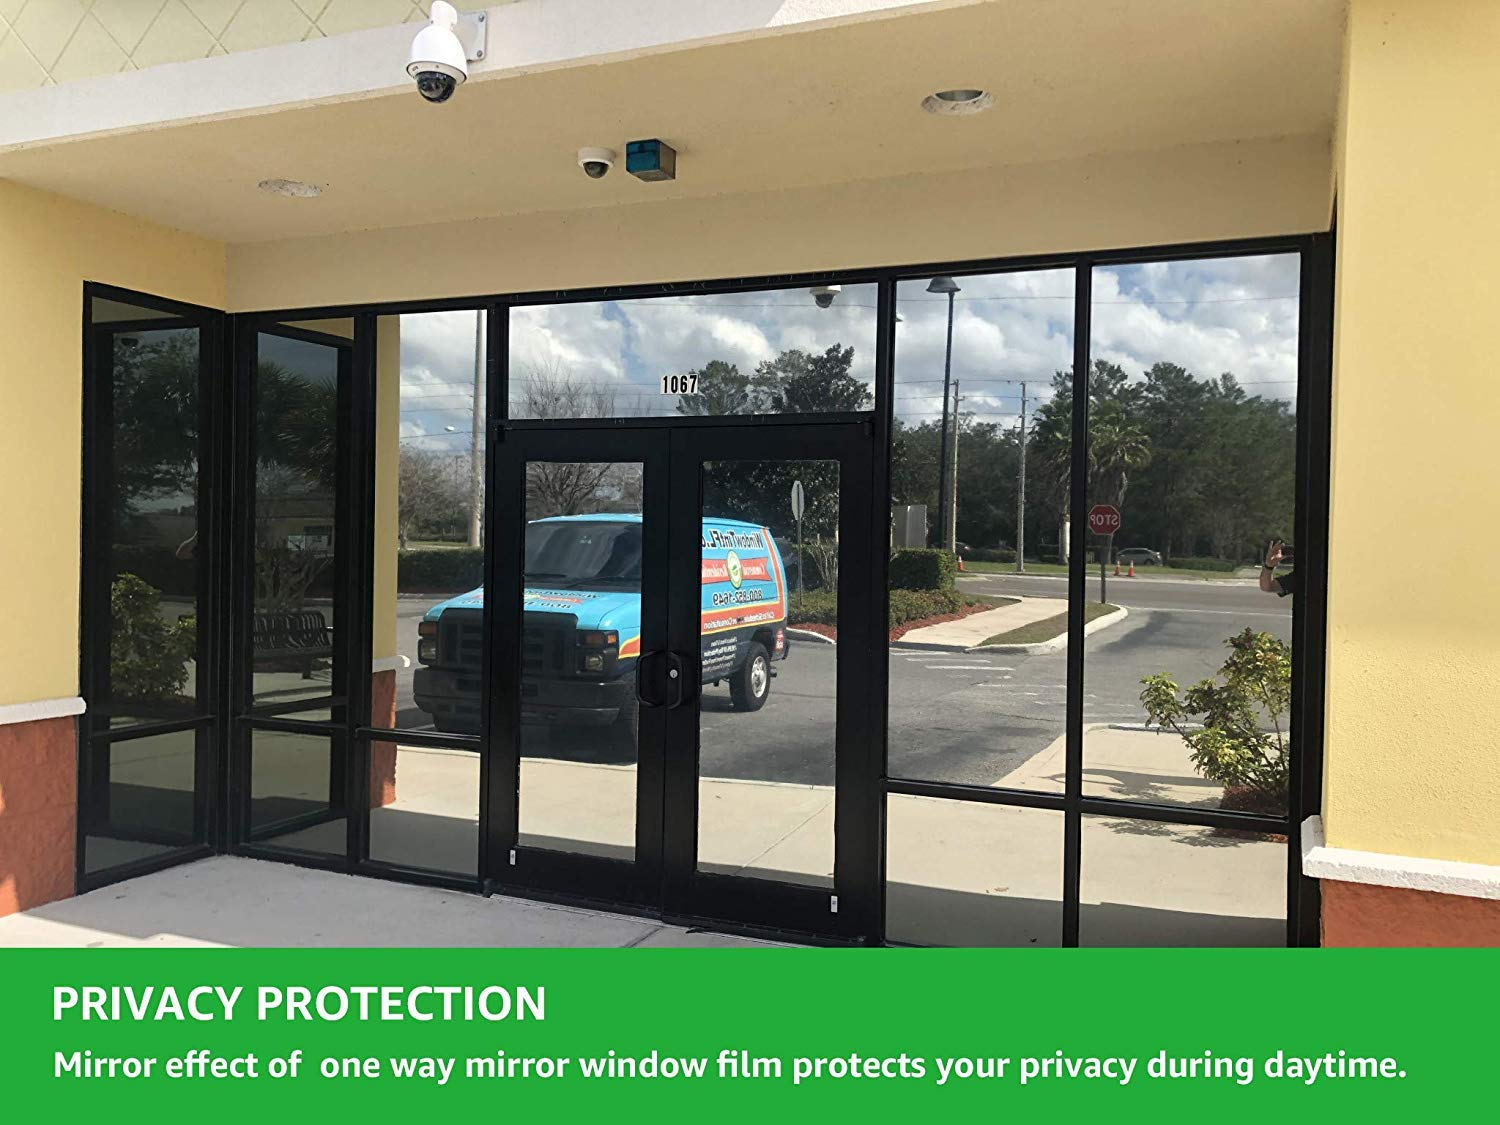 Ablave Window Film One Way Film Mirror Effect Privacy Static (17.7in x 78.7in)